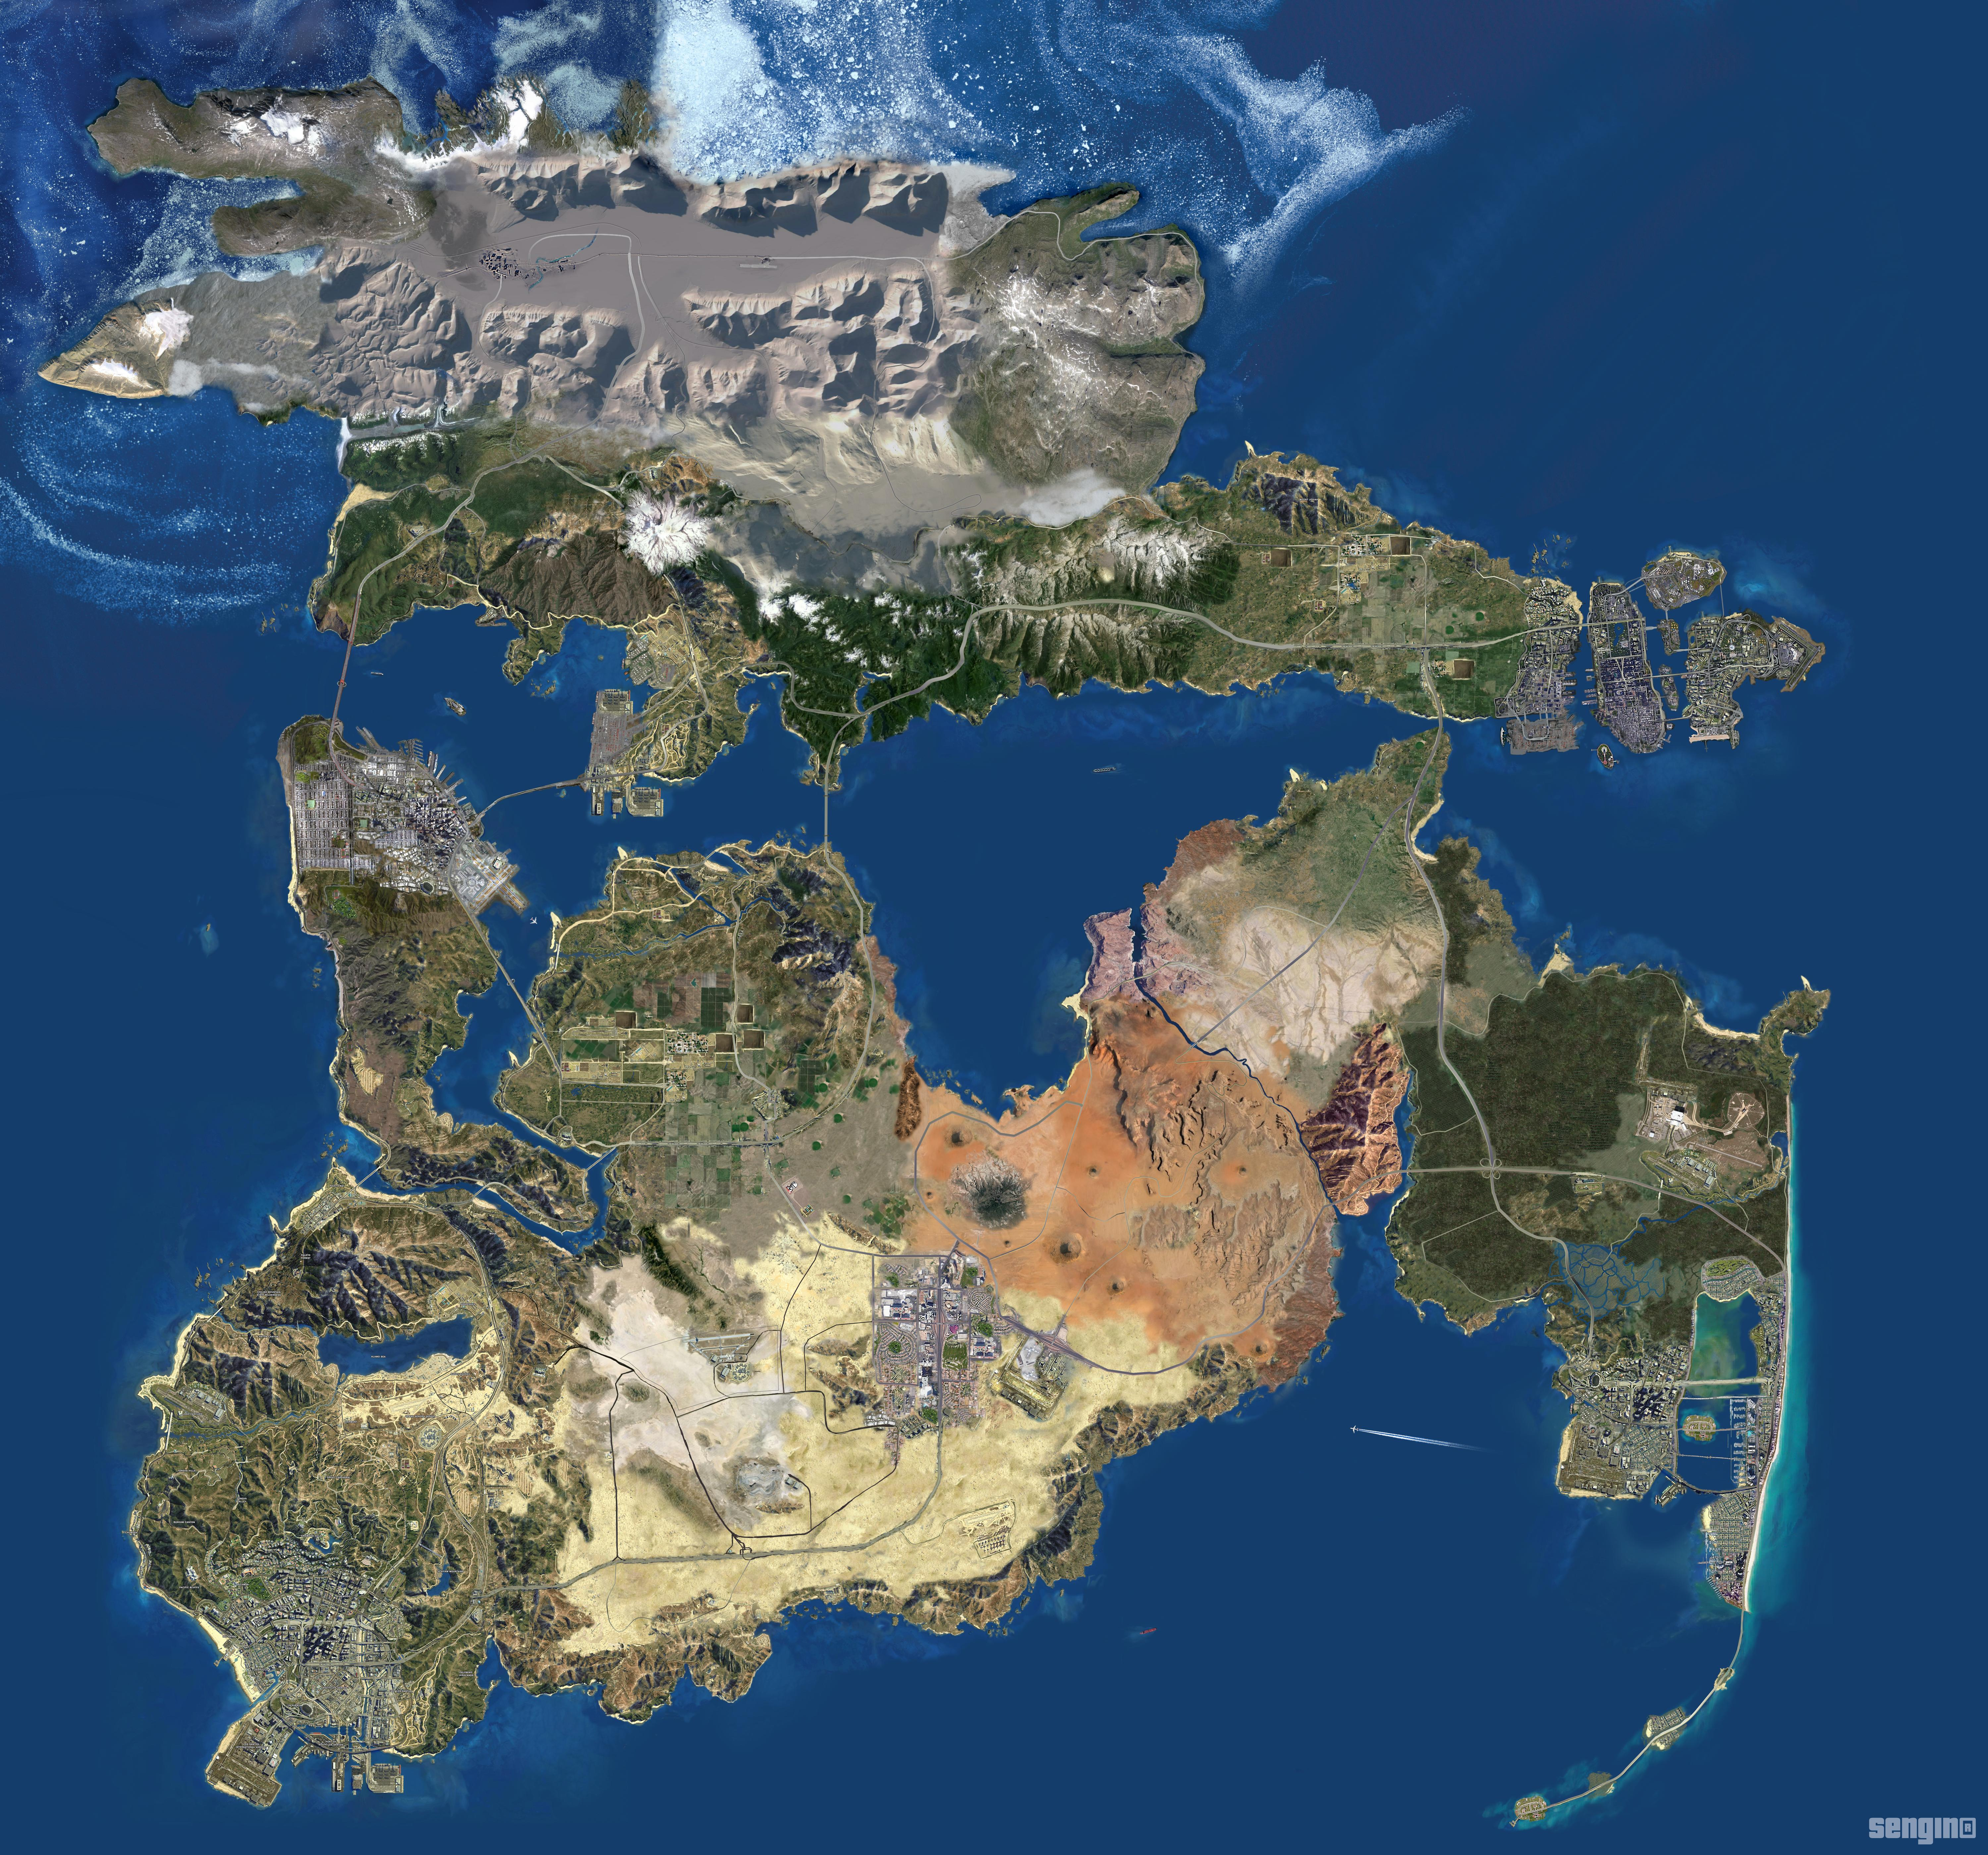 GTAVI-Unofficial-Map-26.03.2019.jpg